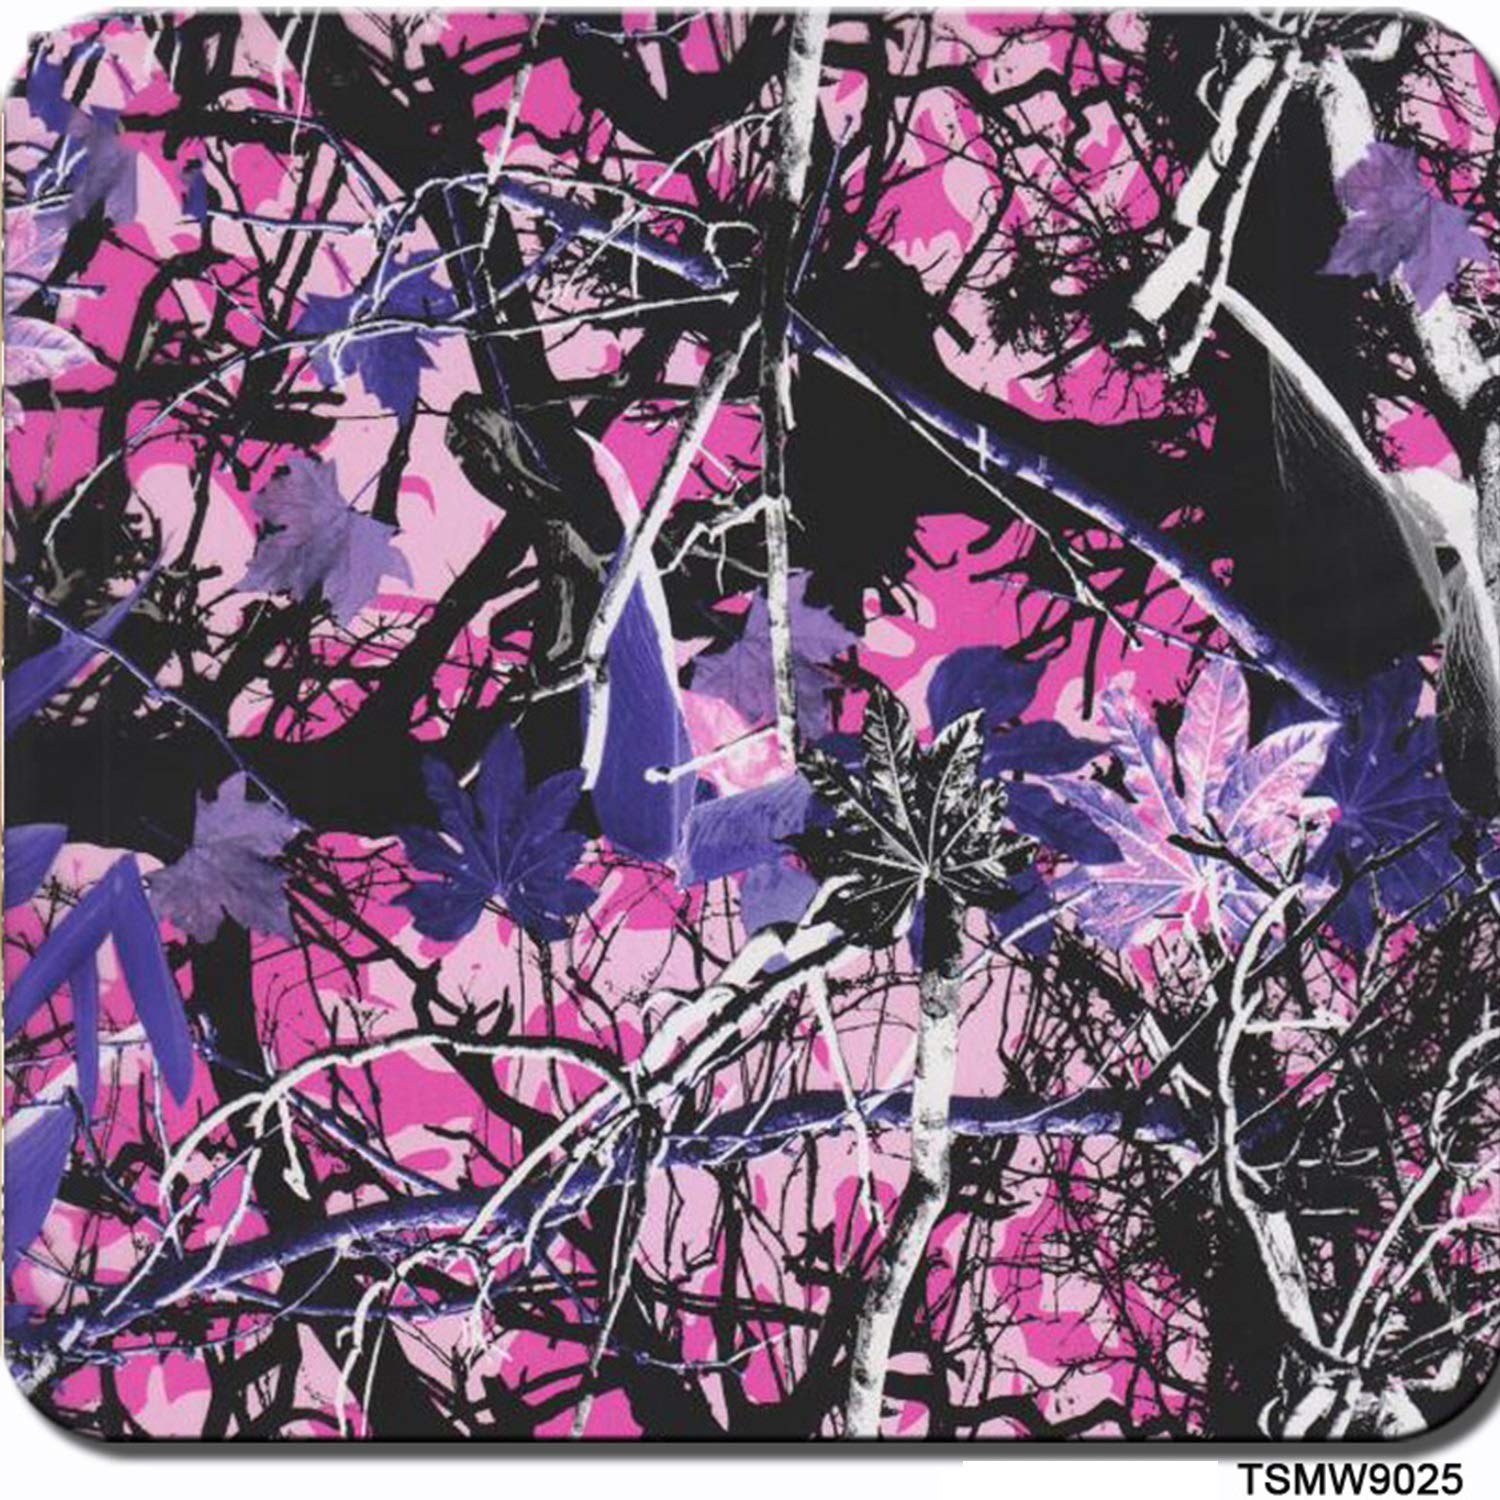 Flame Hydro Film Hydrographic Film Water Transfer Printing Film Color : TSMM002, Size : 0.5mx2m Hydro Dipping -Branch Leaves Pattern-Hydro Dip Film0.5Meter Multi-Color Optional